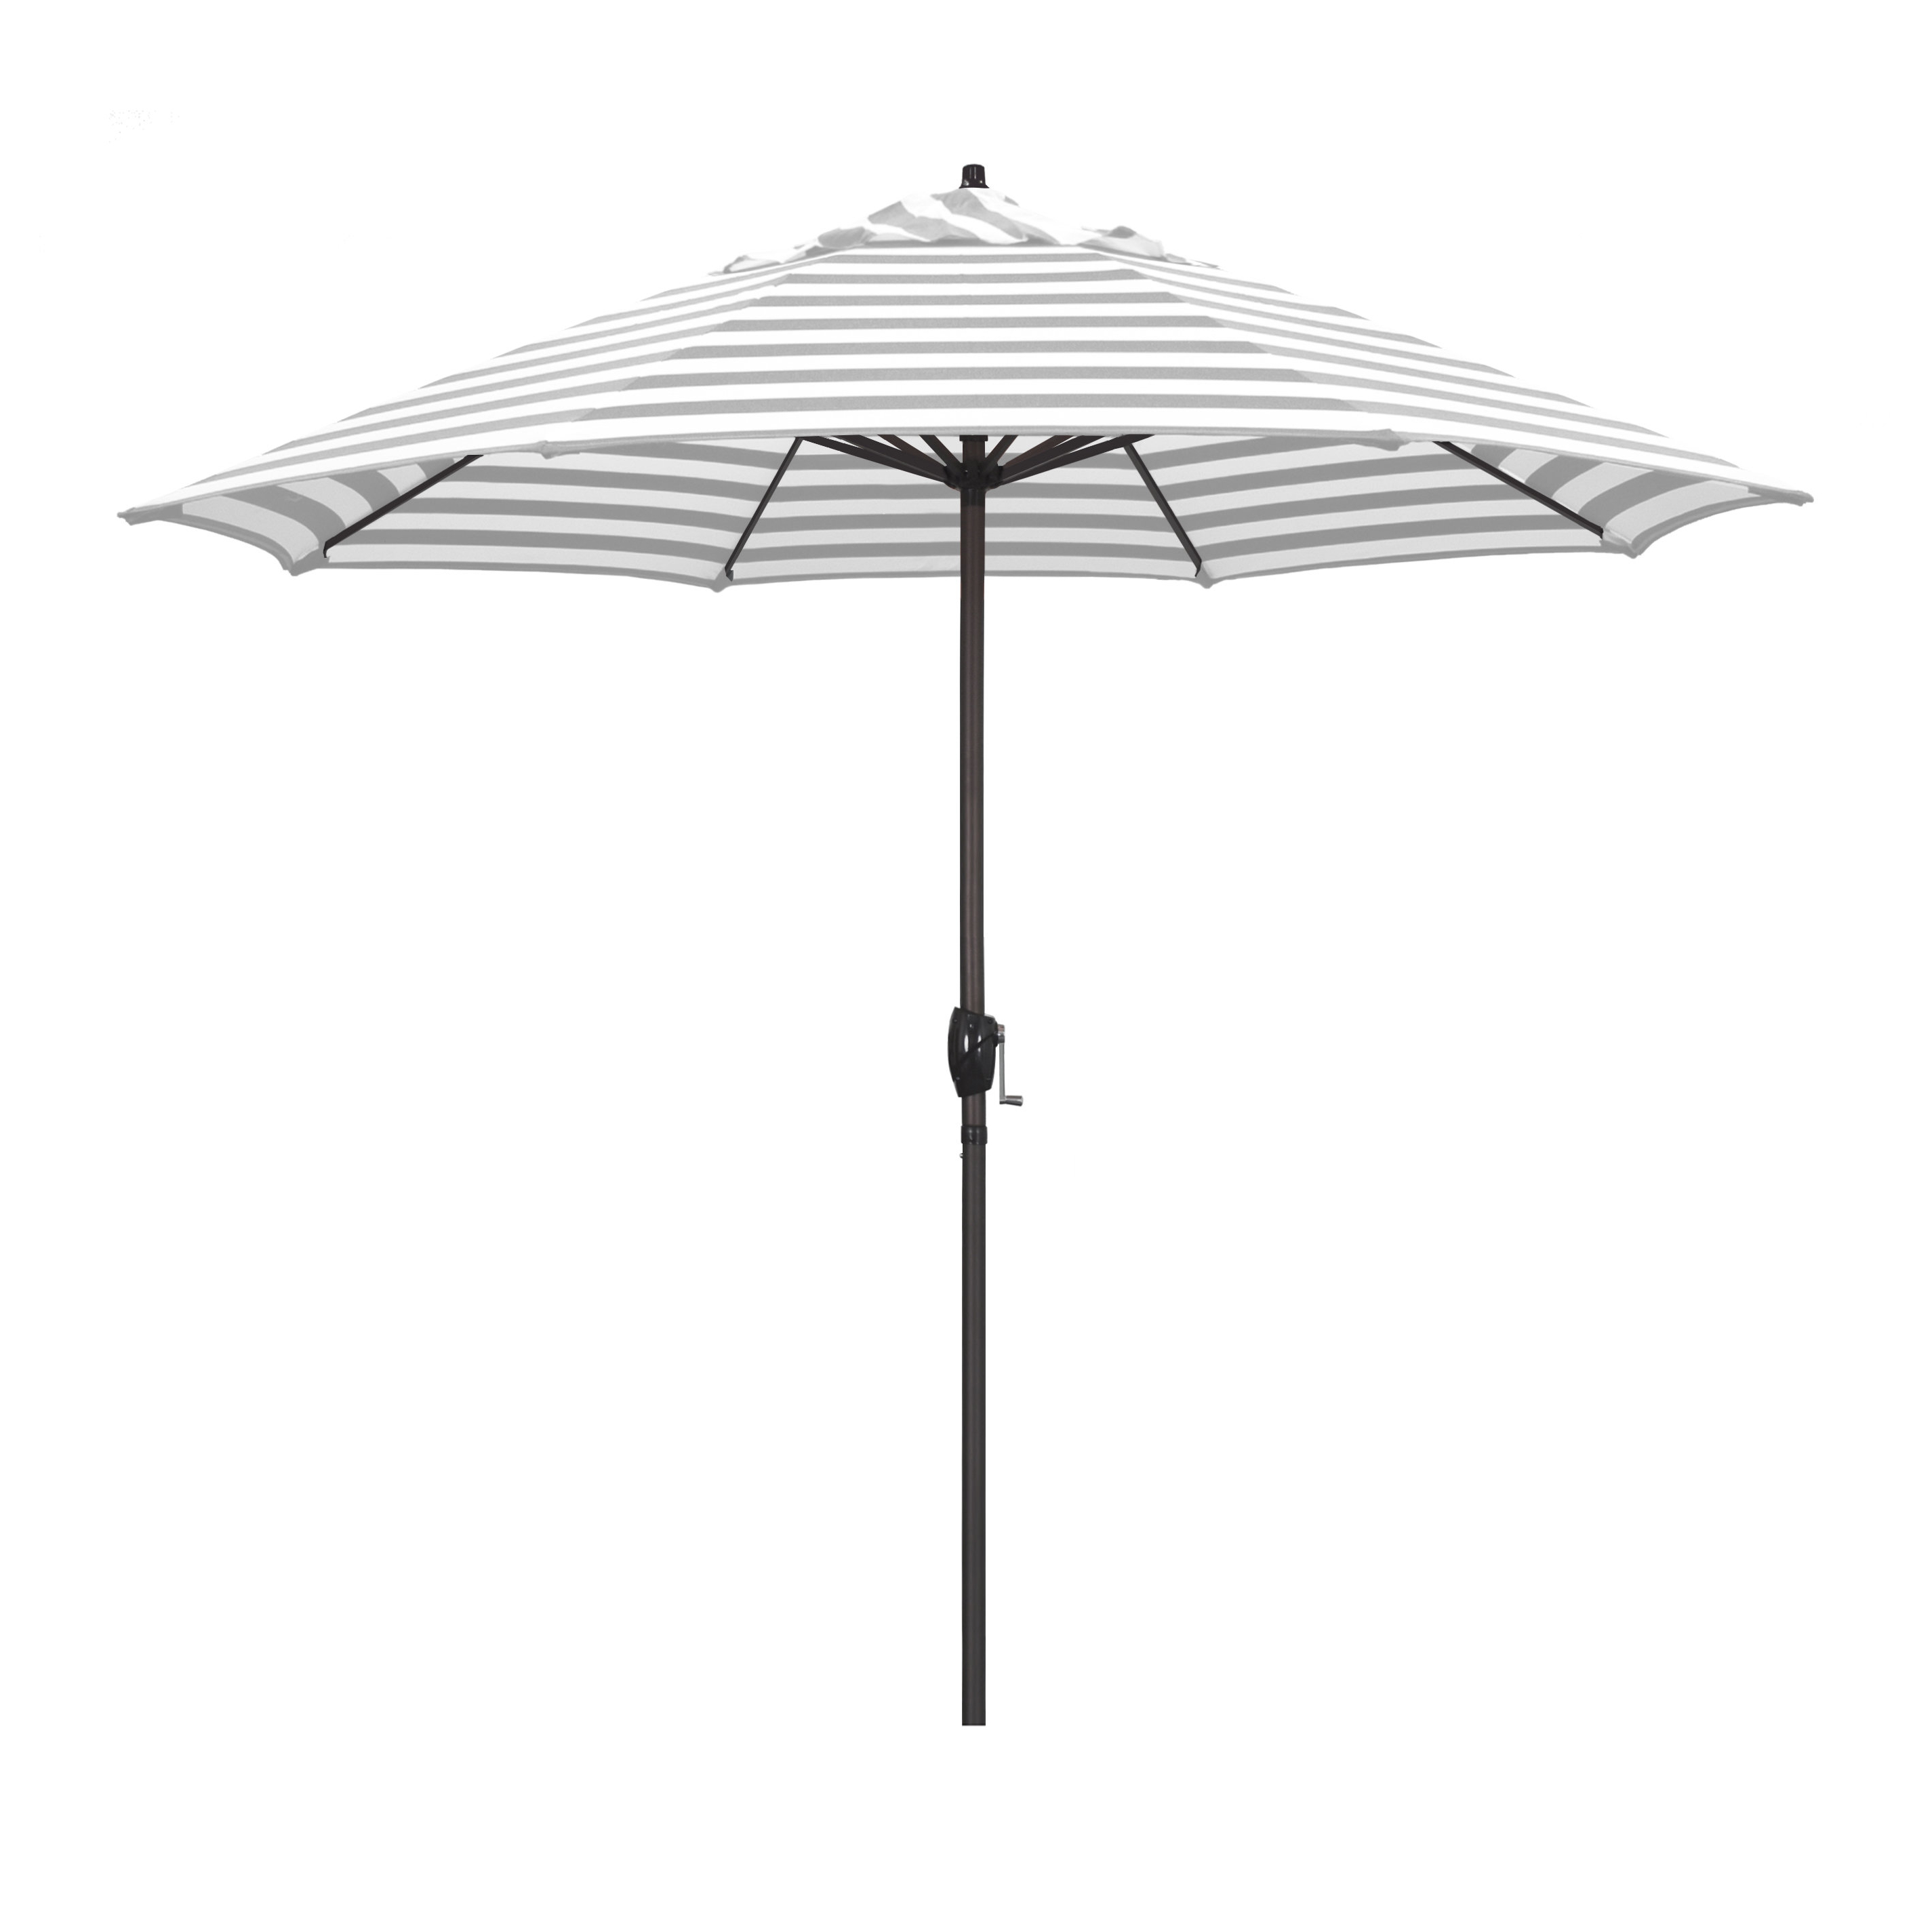 Most Popular Mucci Madilyn Market Sunbrella Umbrellas Throughout Cardine 9' Market Umbrella (View 4 of 20)